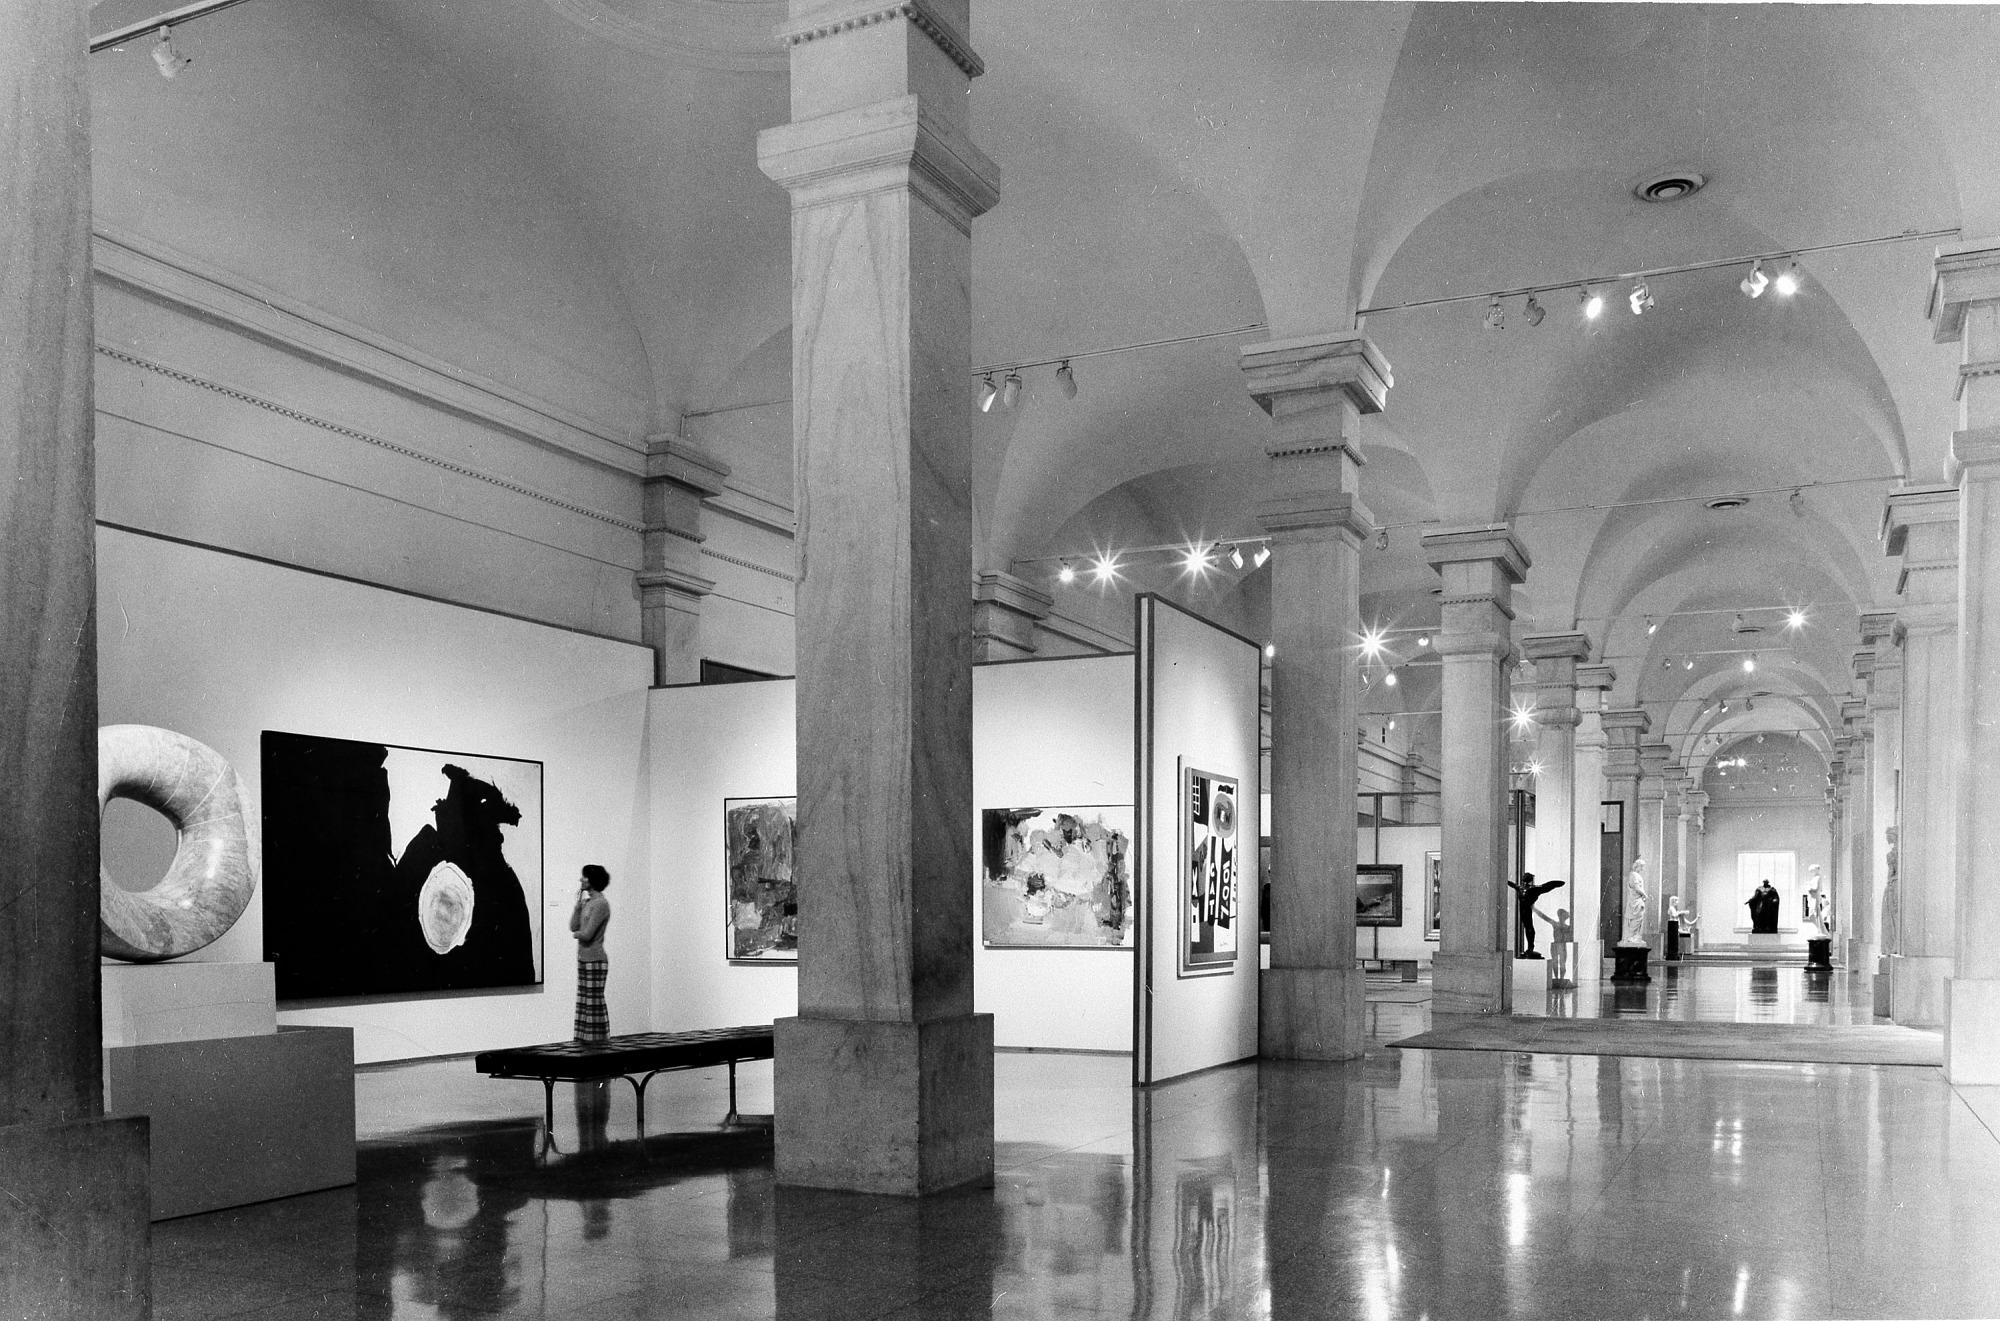 Lincoln Gallery of the NCFA, by Curry, Martin, 1968, Smithsonian Archives - History Div, 92-1776.